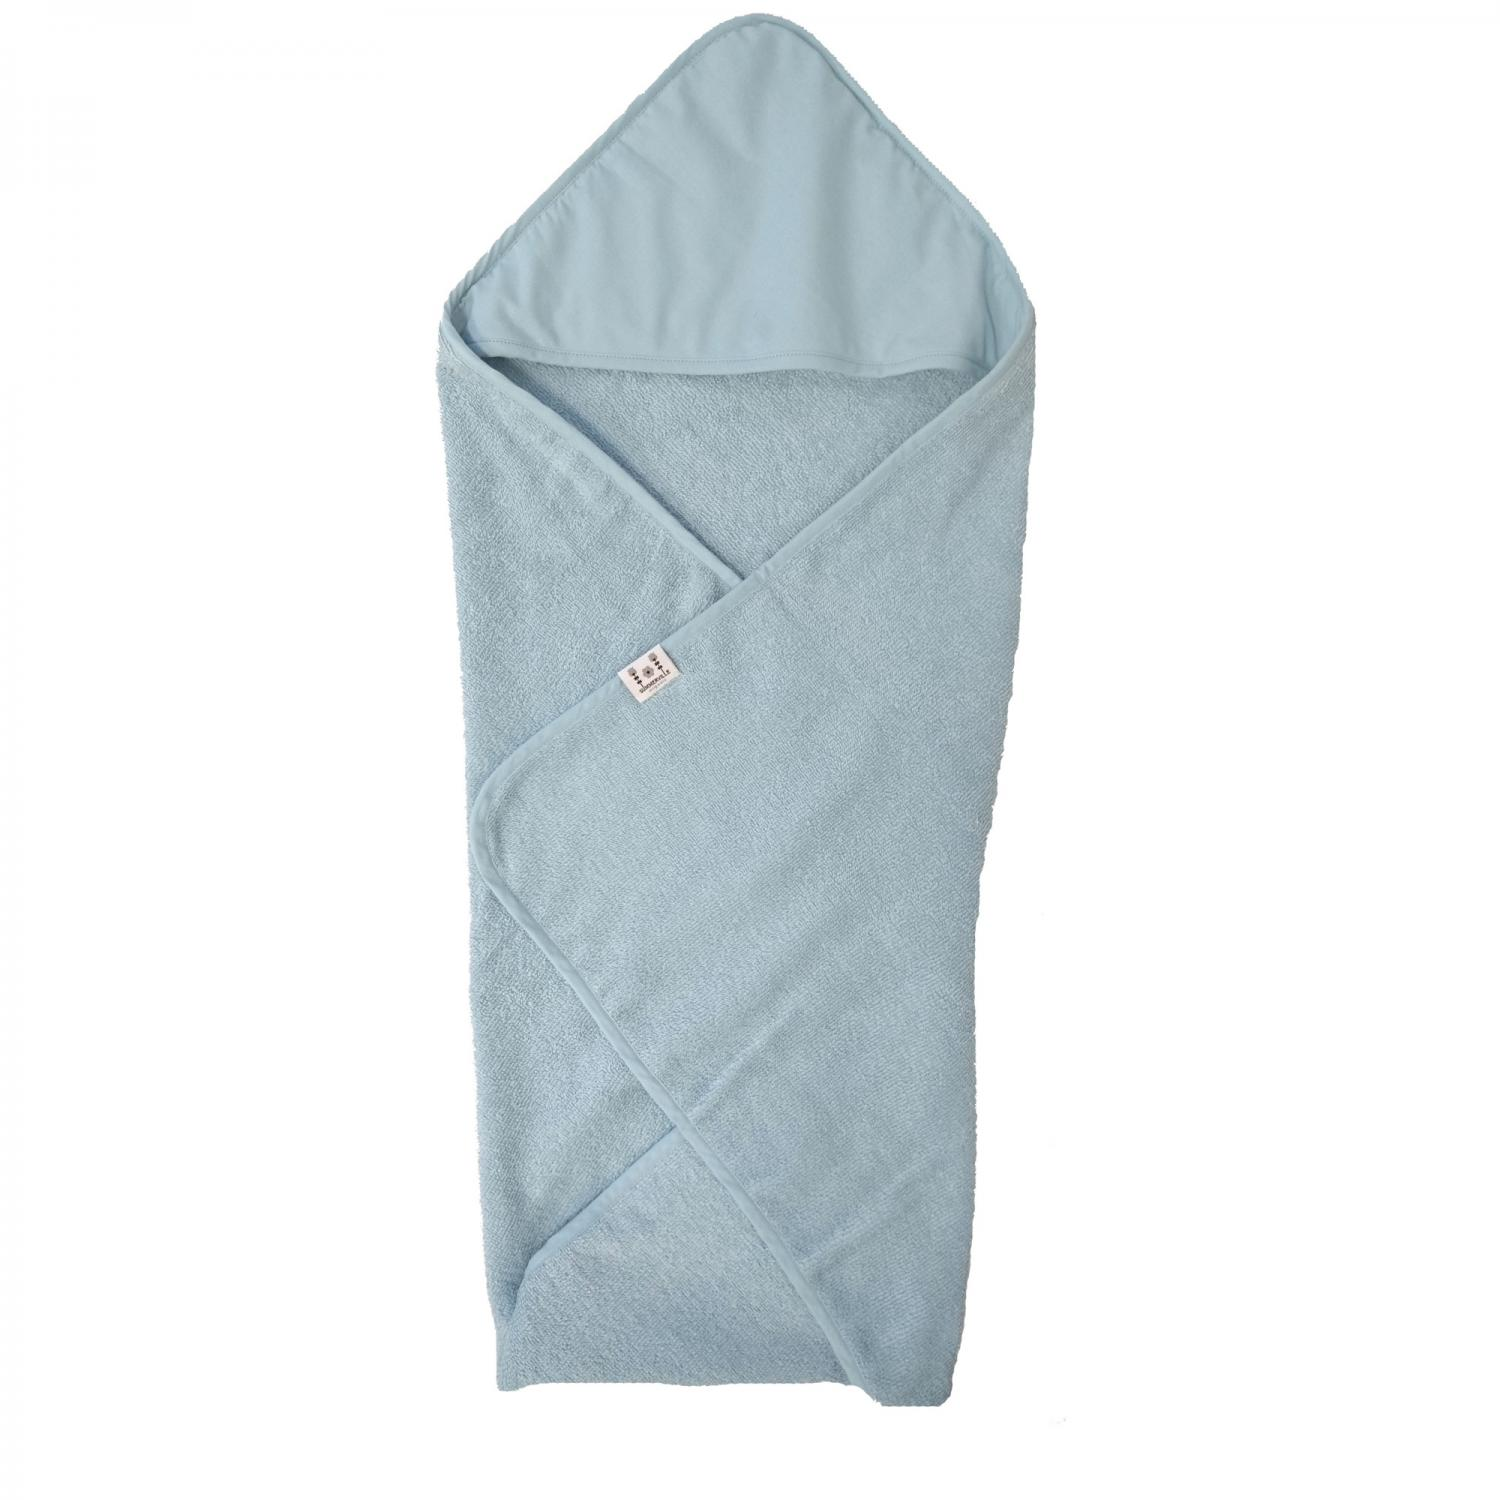 Hooded towel style sapphire